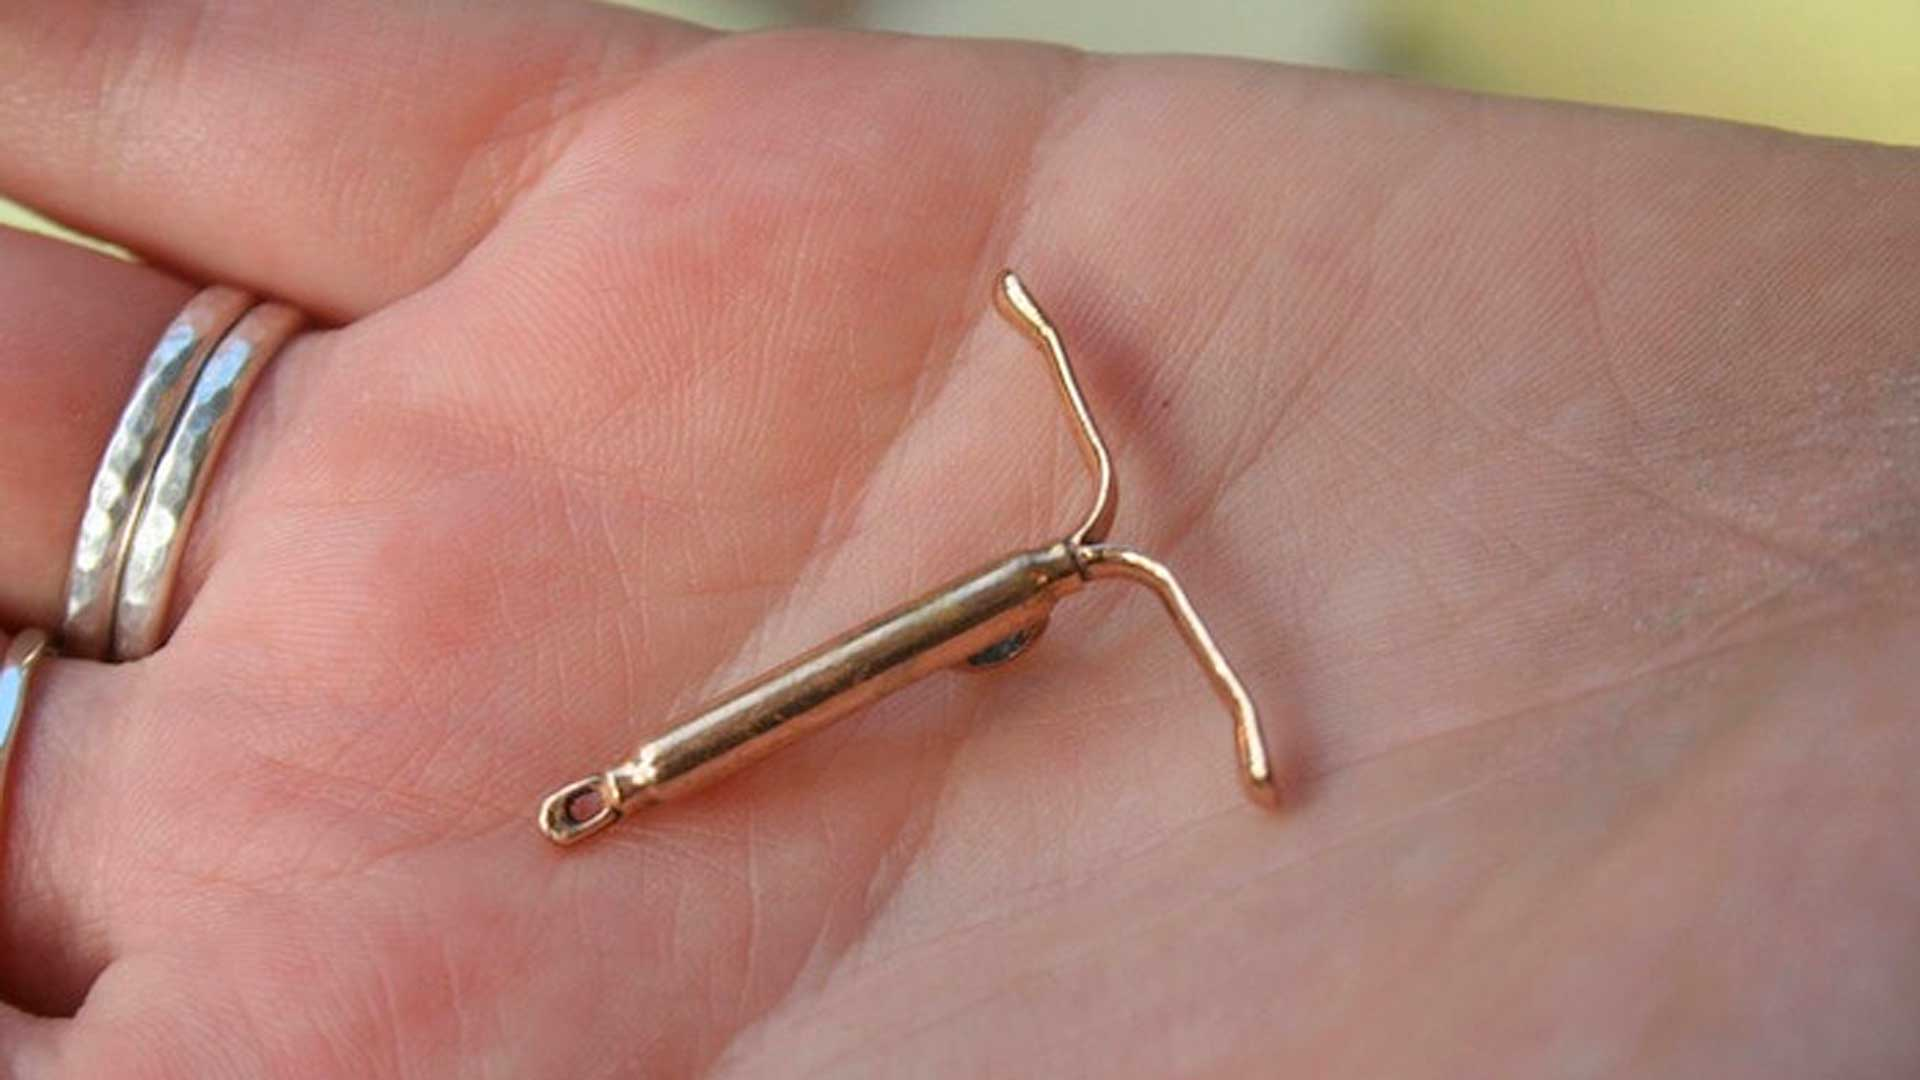 Copper IUDs: What your doctor doesn't know may be harming you